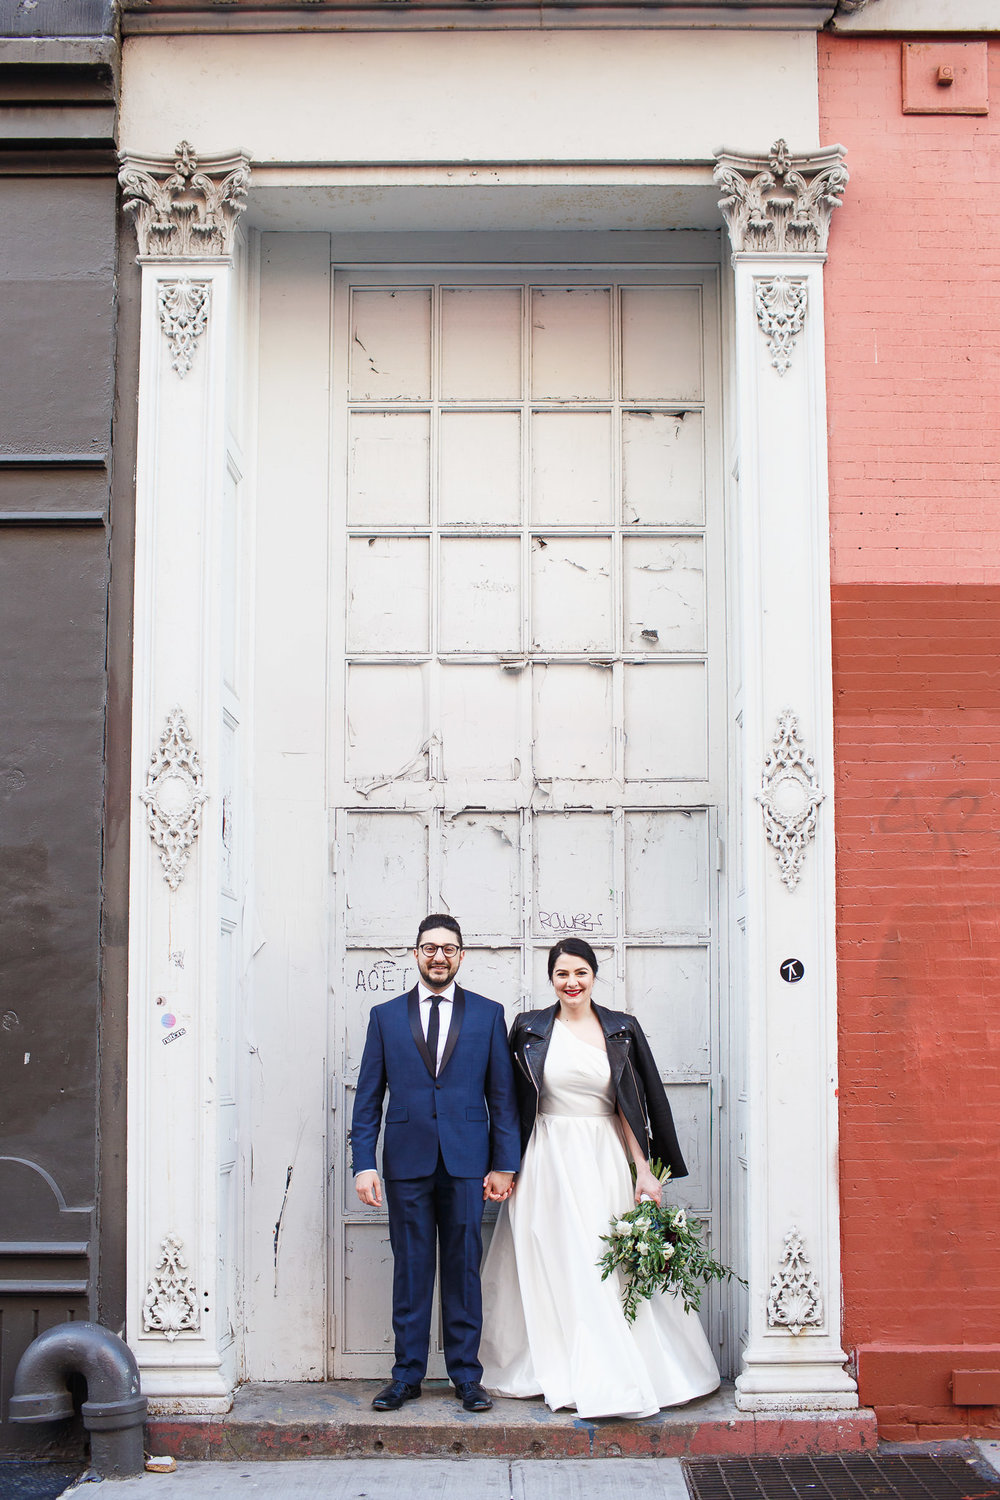 Bride and Groom in front of a white painted door in soho new york city